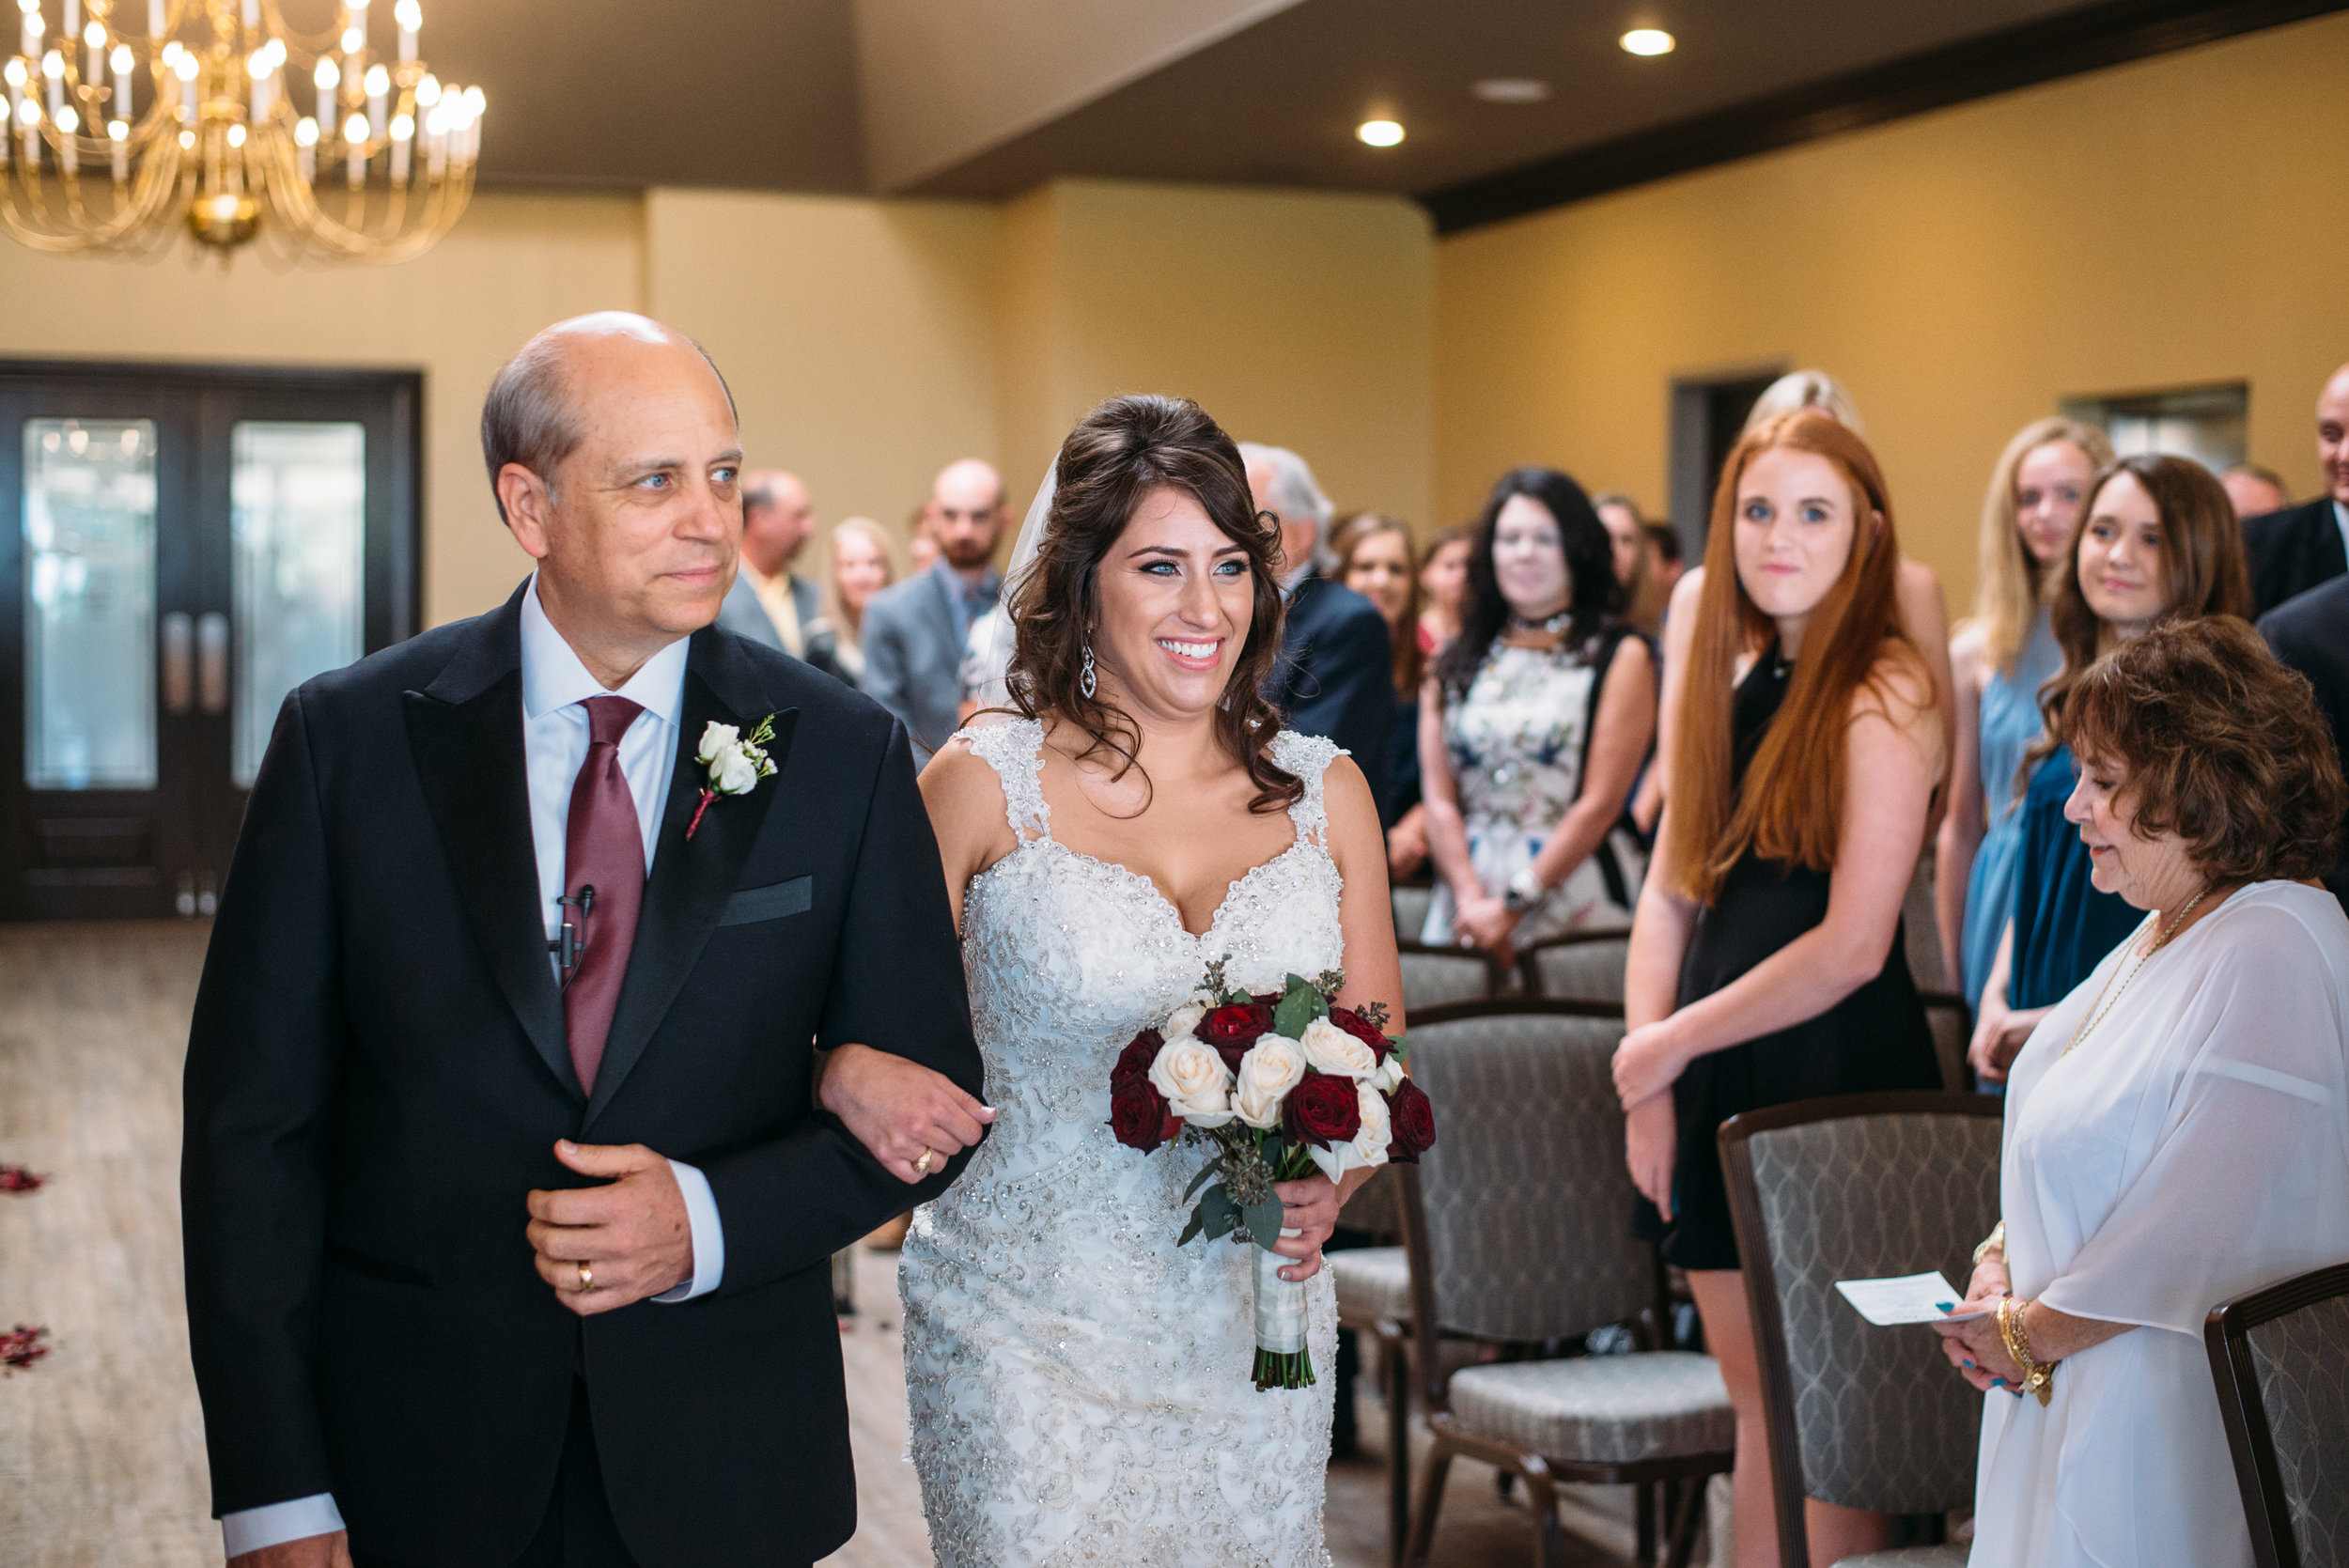 PhillipsEventCenter-AggieWedding-CollegeStationPhotographer_30.jpg